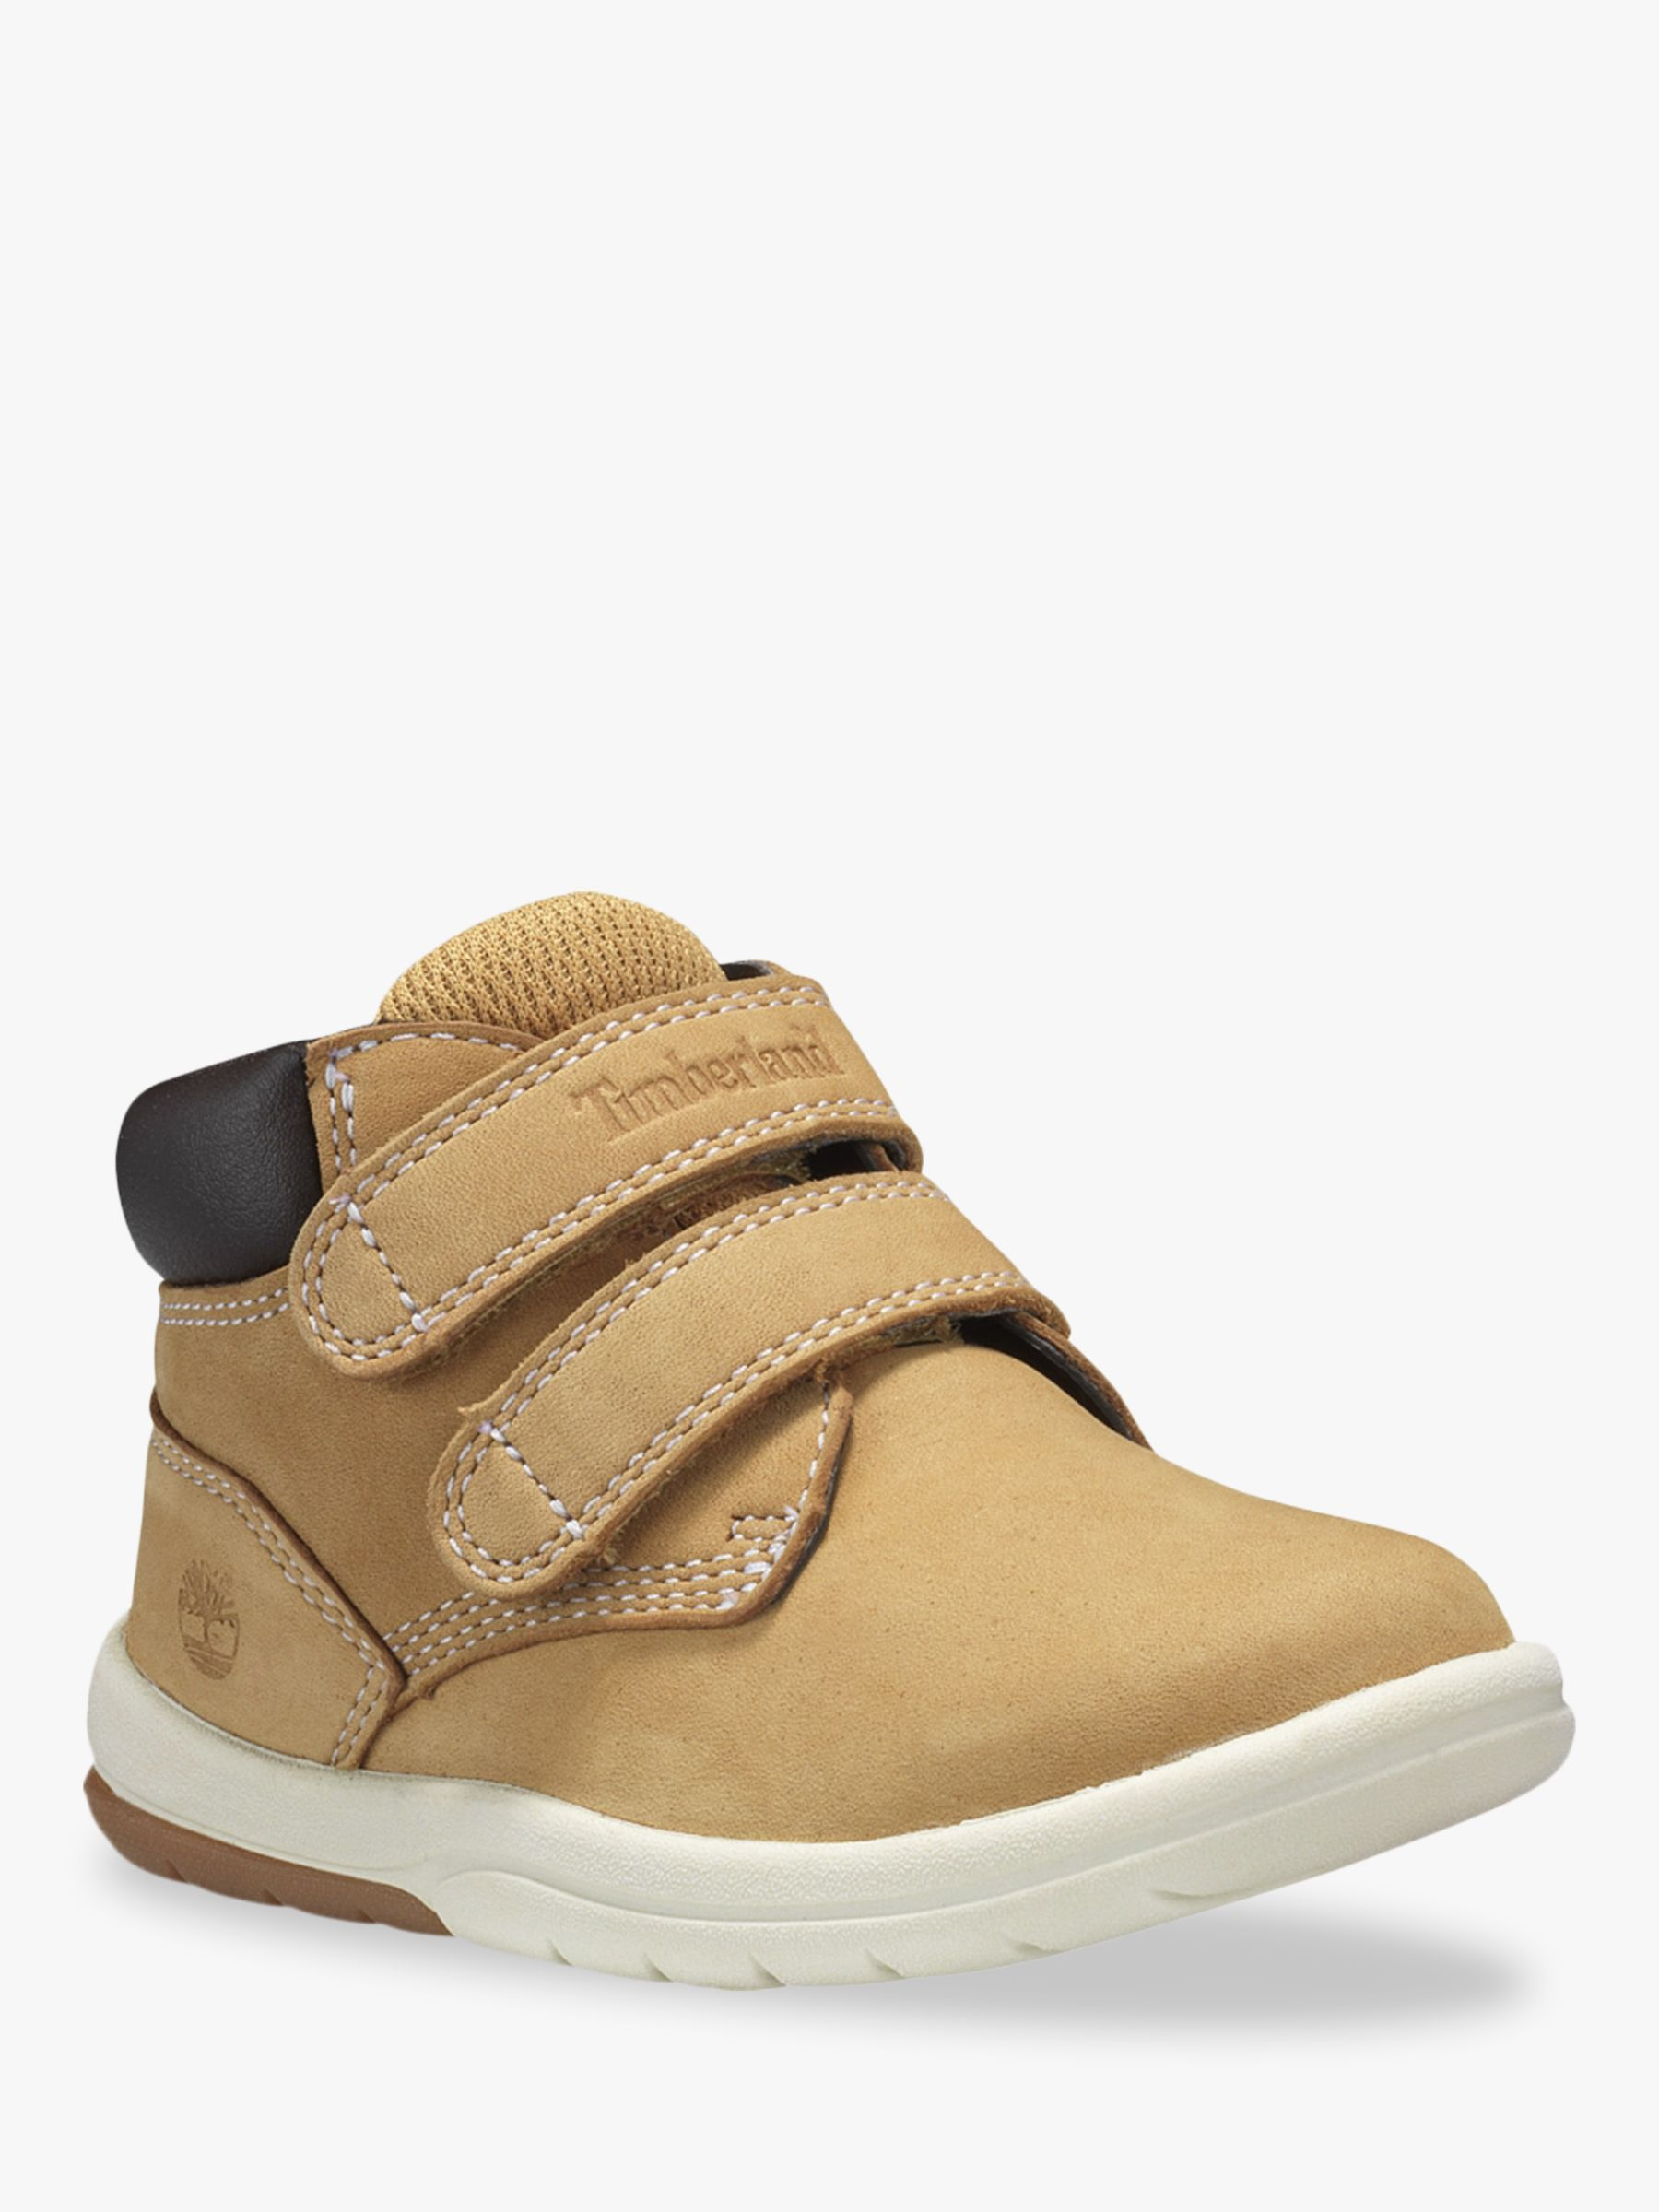 Timberland Children's Toddle Track Boots, Wheat